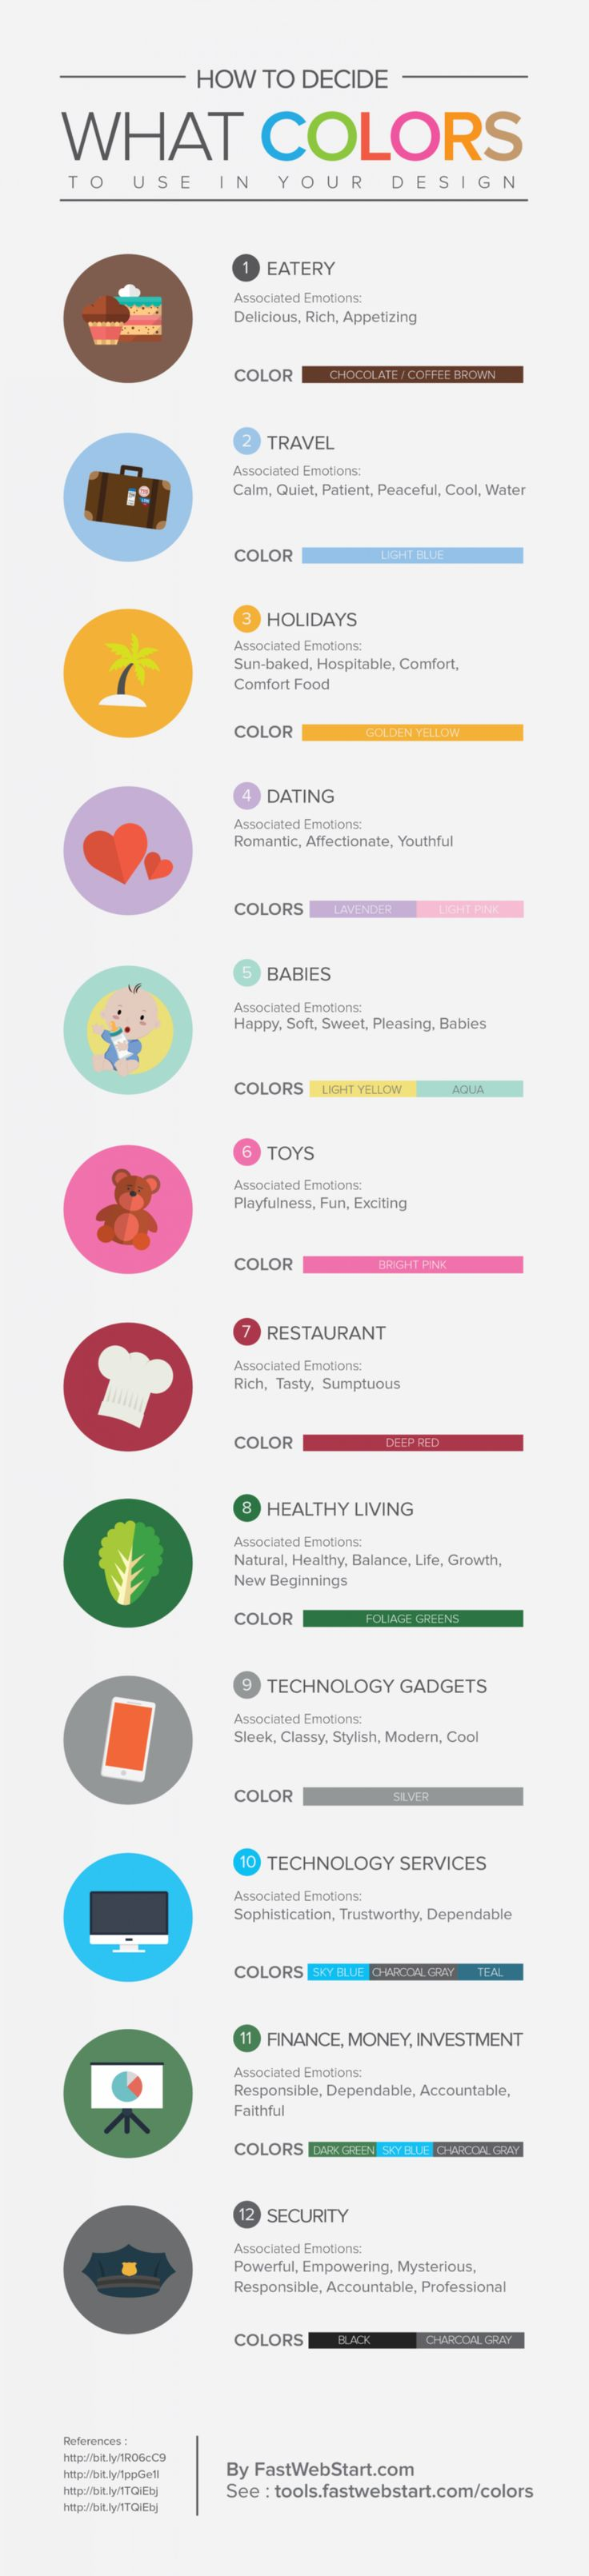 How To Decide What Colors To Use in Your Design #Infographic